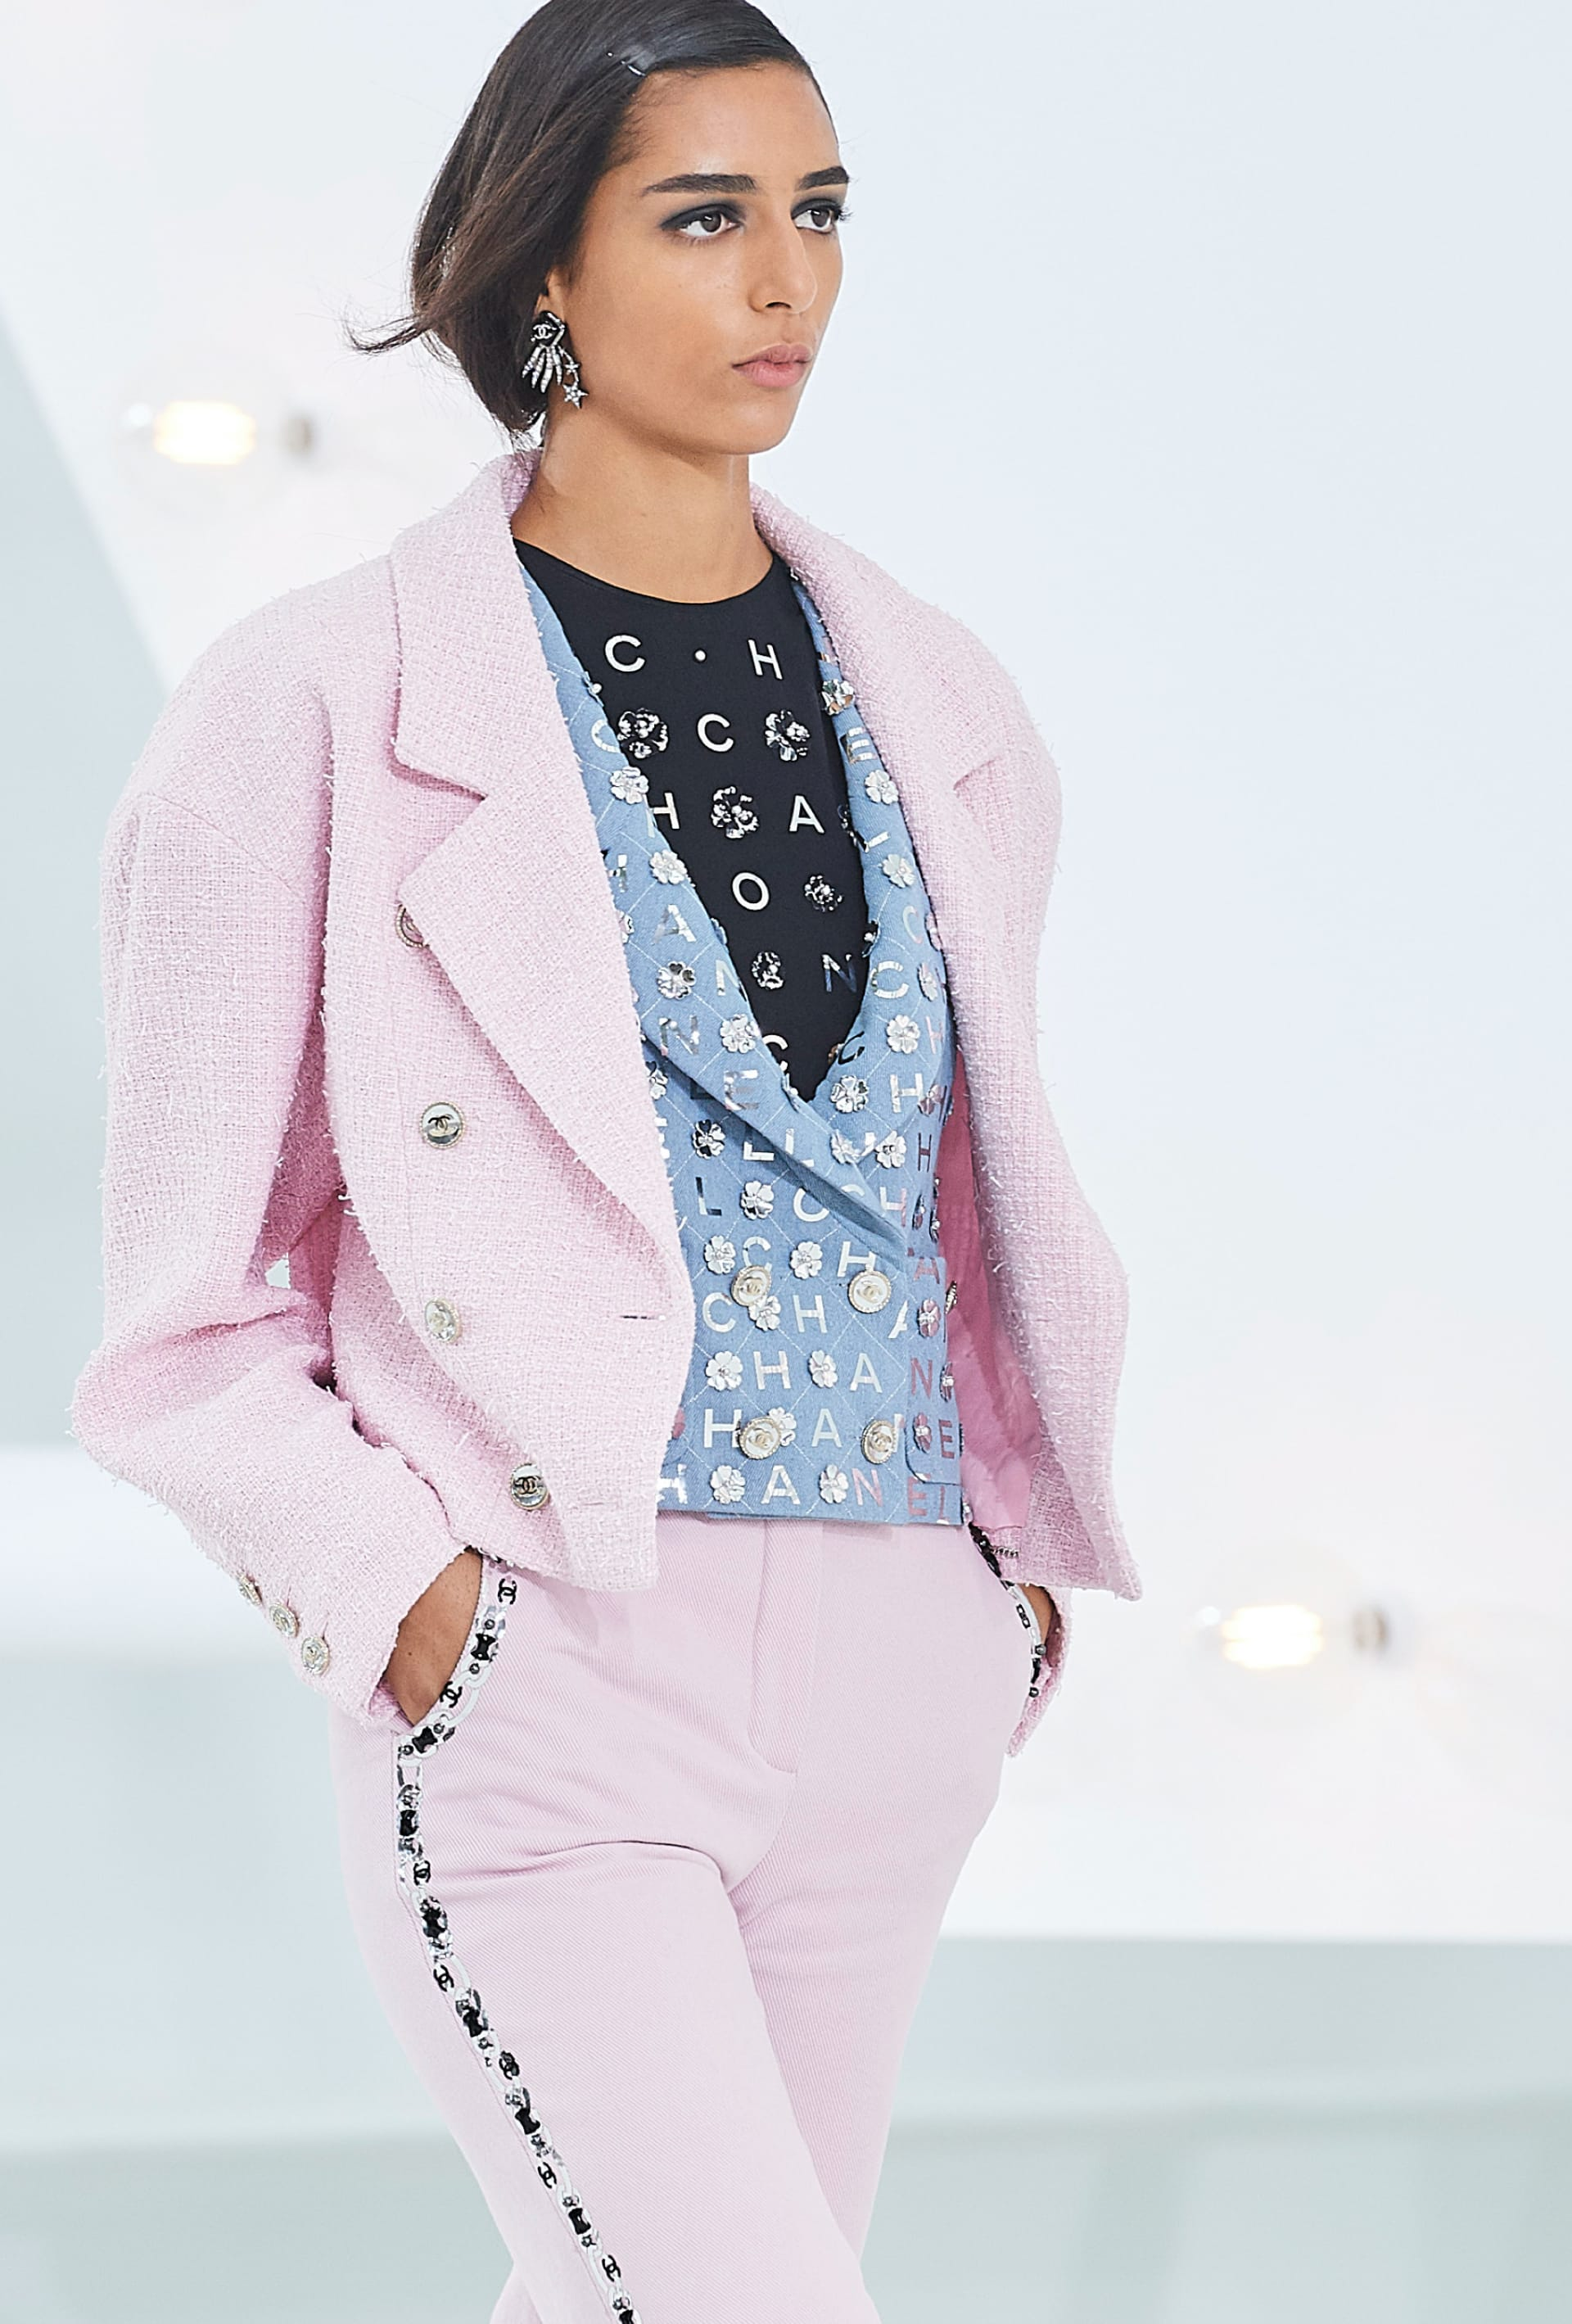 View 2 - Look 5 - Spring-Summer 2021 - see full sized version